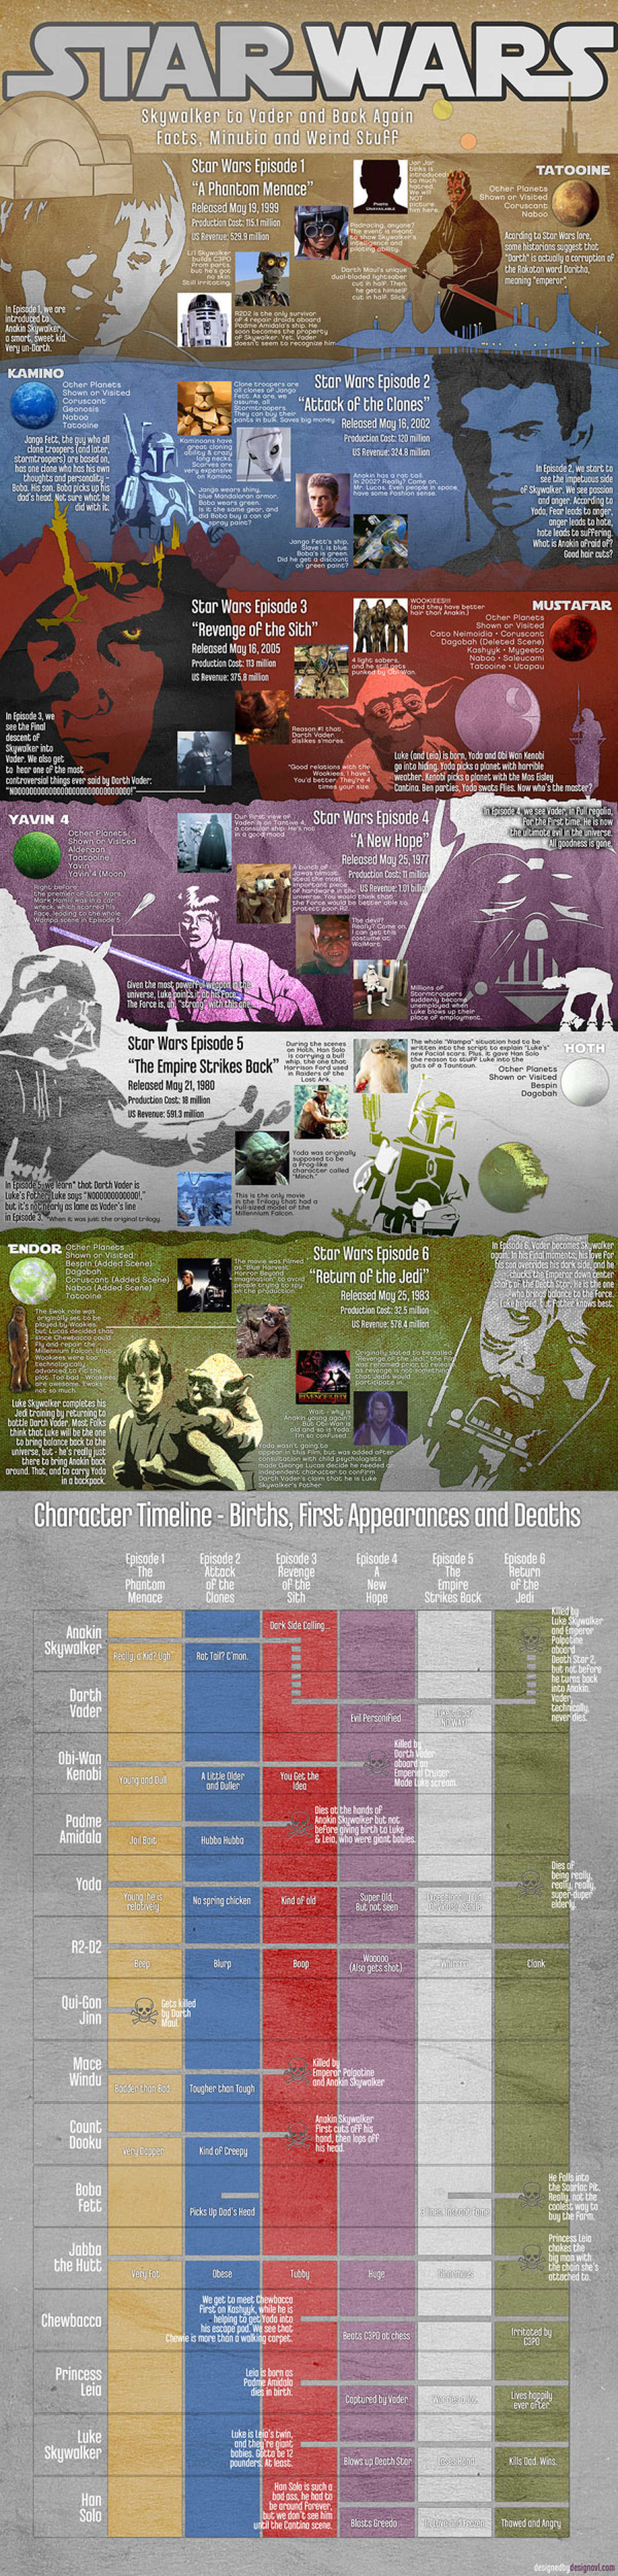 Star Wars Movies Timeline Infographic